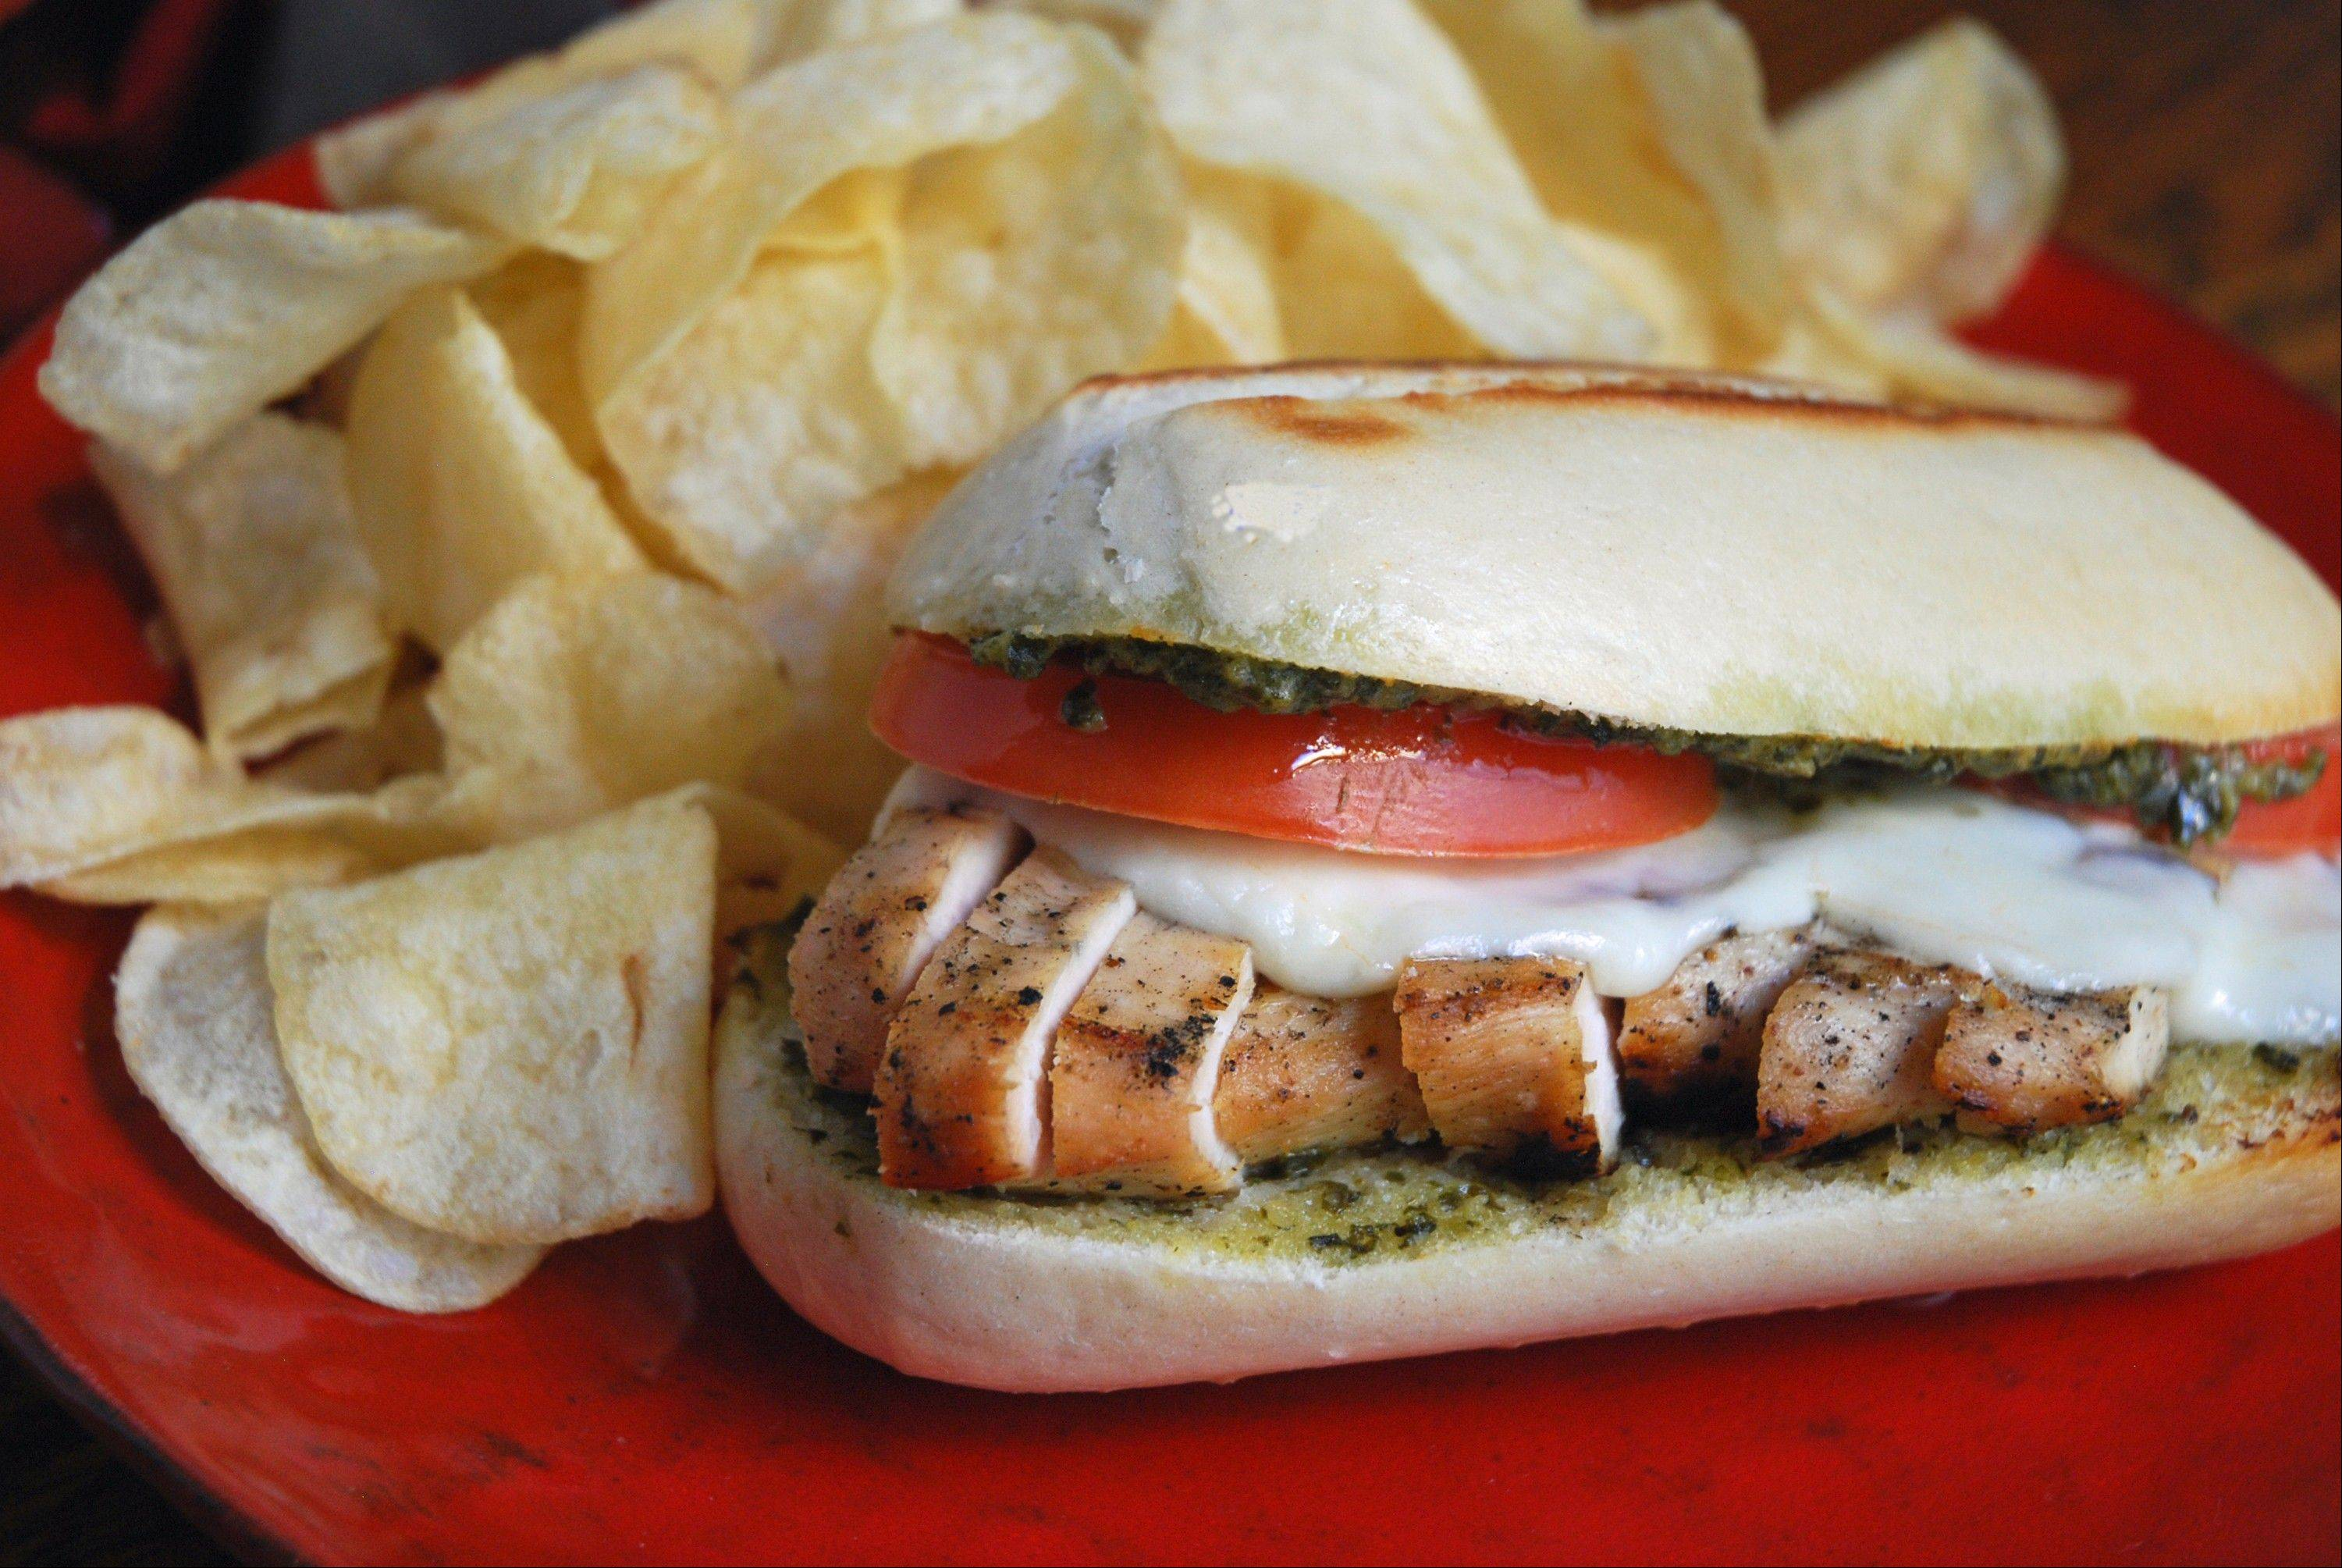 Fresh-baked bread takes this Chicken �Caprese� Sub to a whole new level.